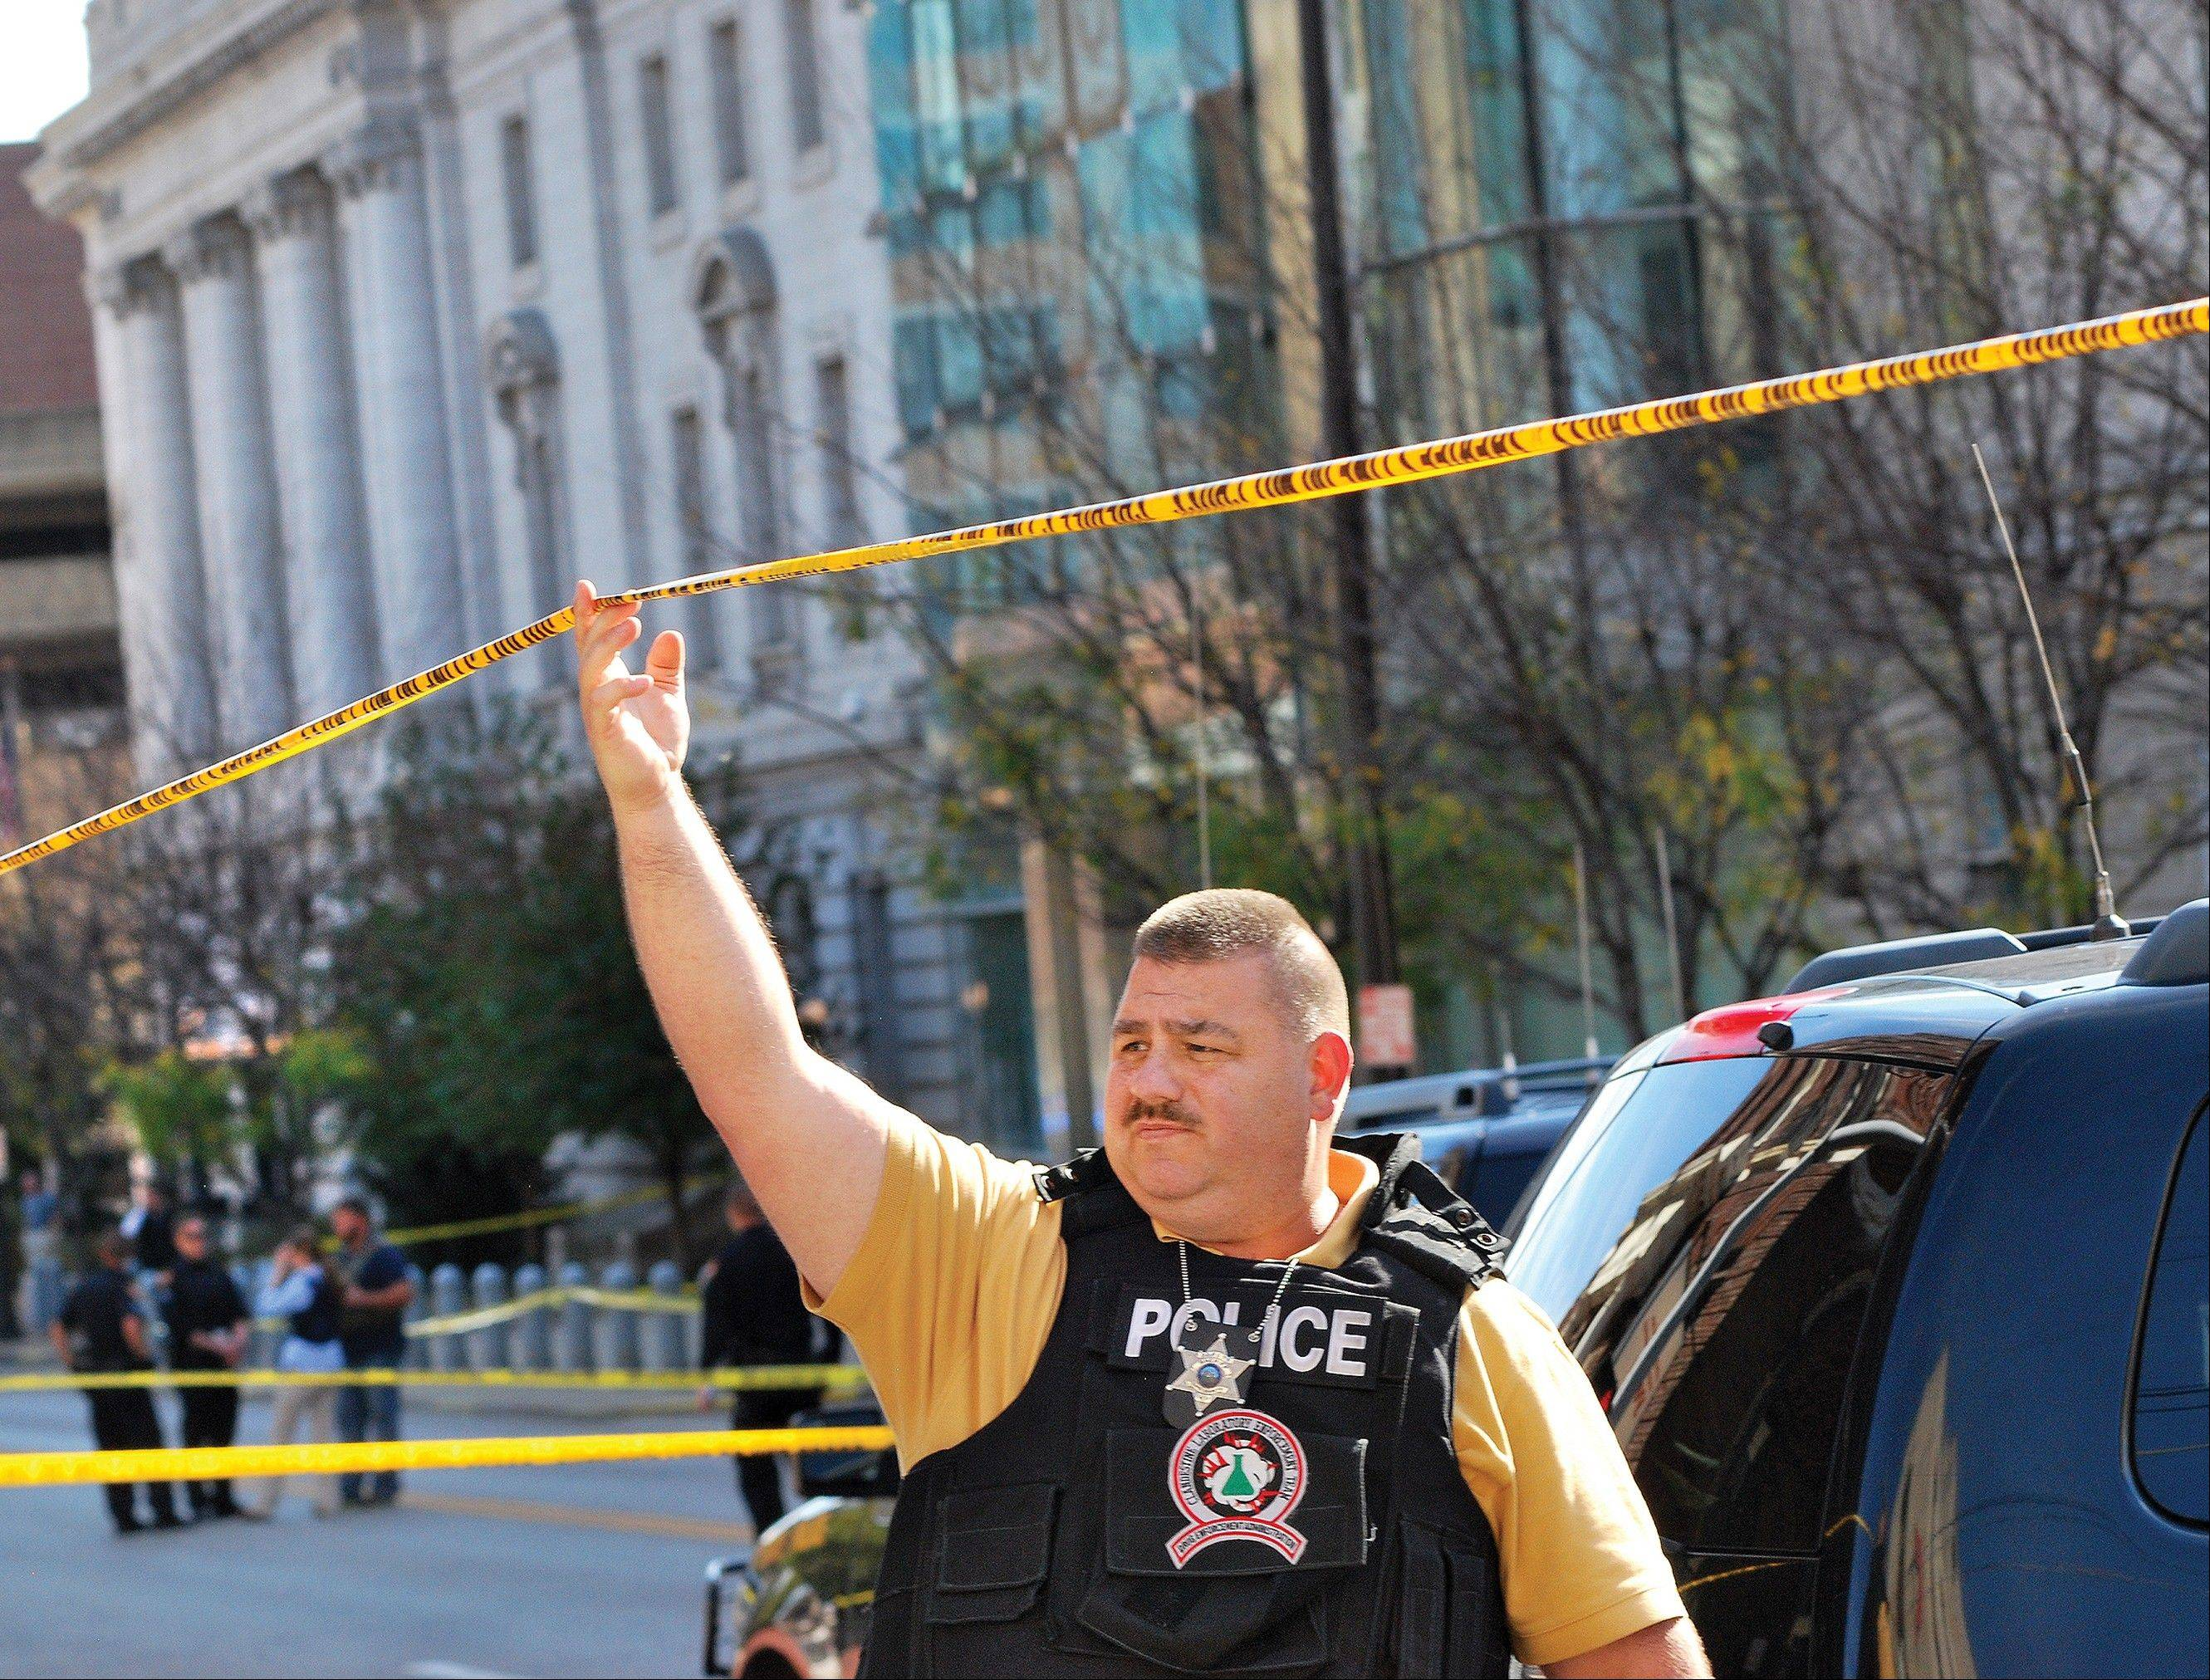 An Ohio County Sherriff Department deputy secures an area in front of the Federal Buildng in Wheeling, W. Va., Wedneday, following a shooting outside the courthouse.